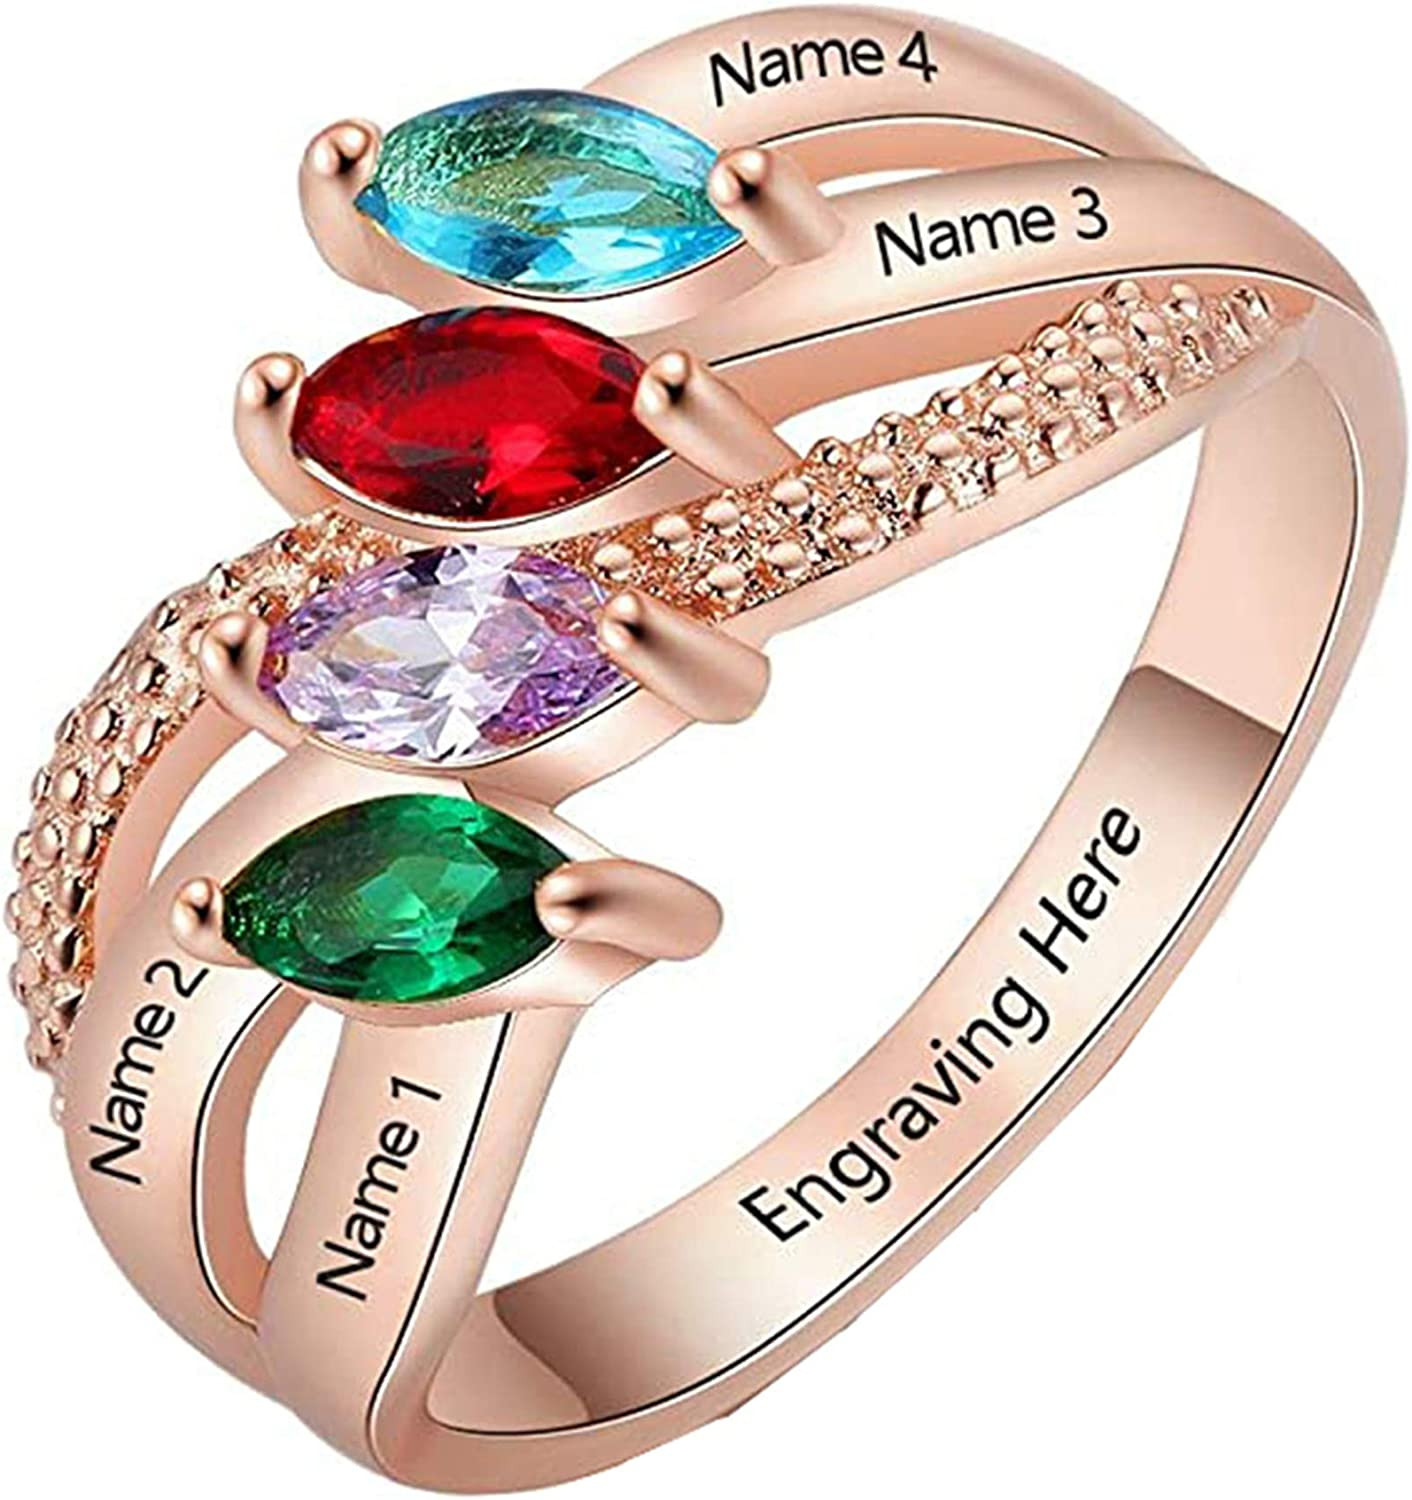 Custom Los Angeles Mall 40% OFF Cheap Sale Name Ring Personalized Birt Engraved Family 4